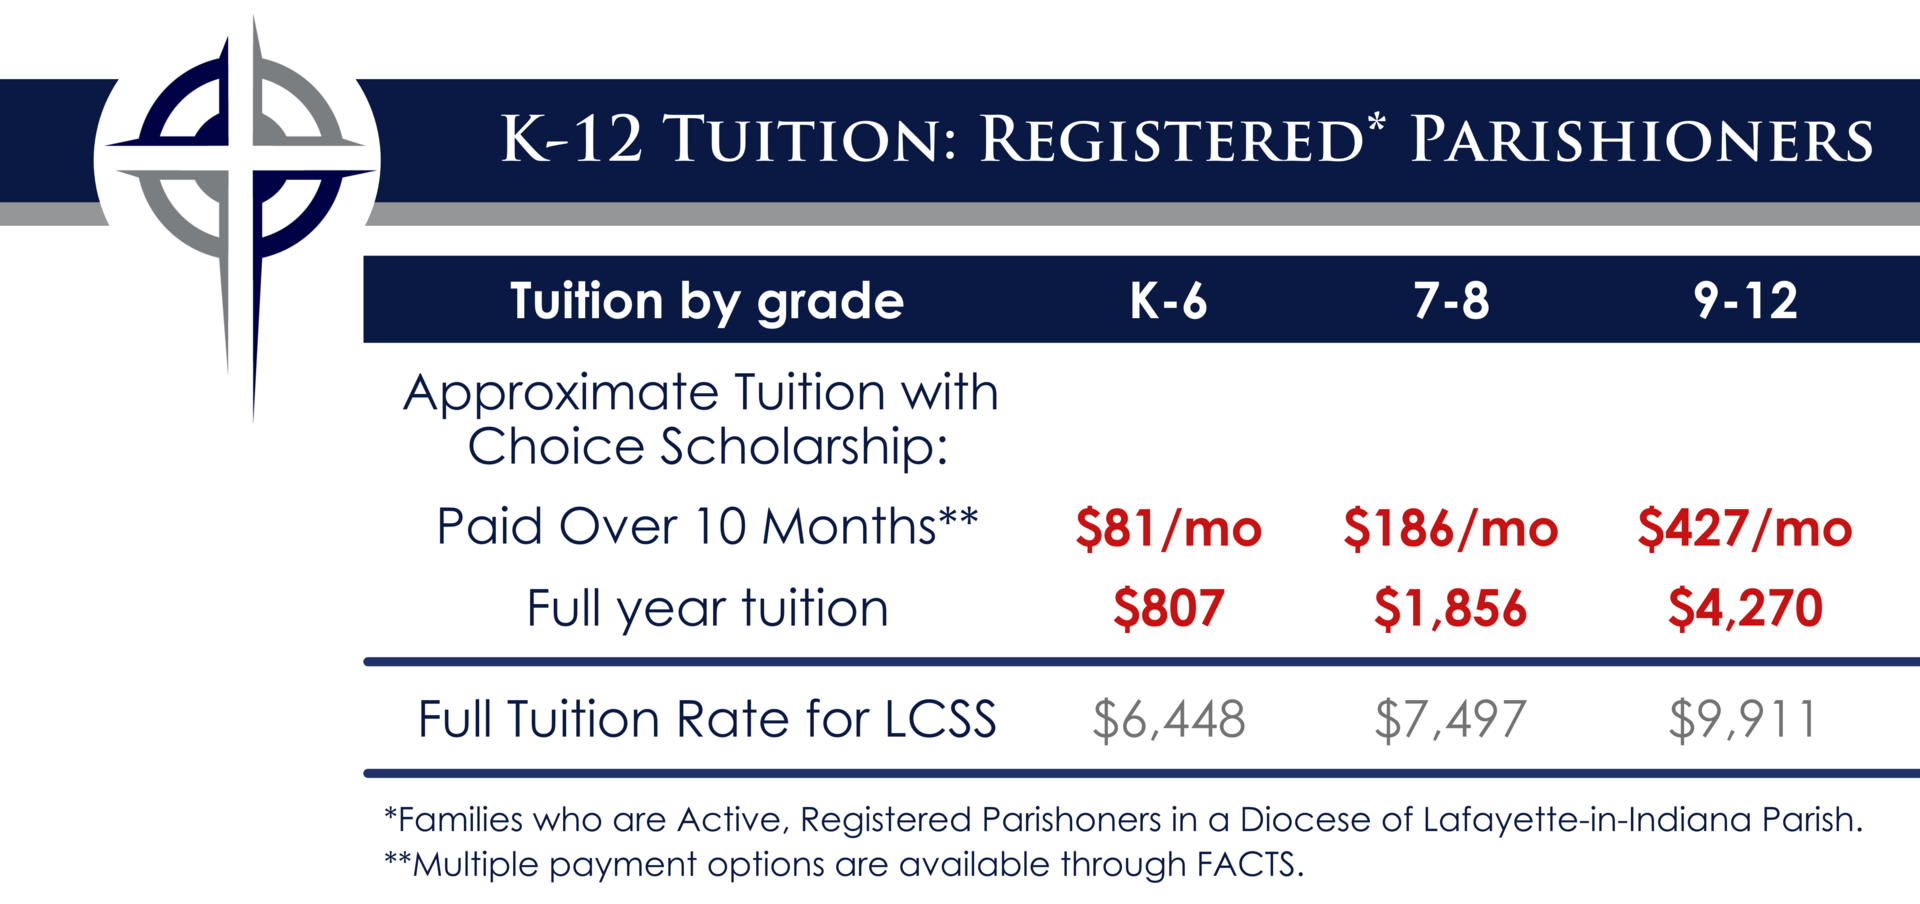 K-12 Tuition